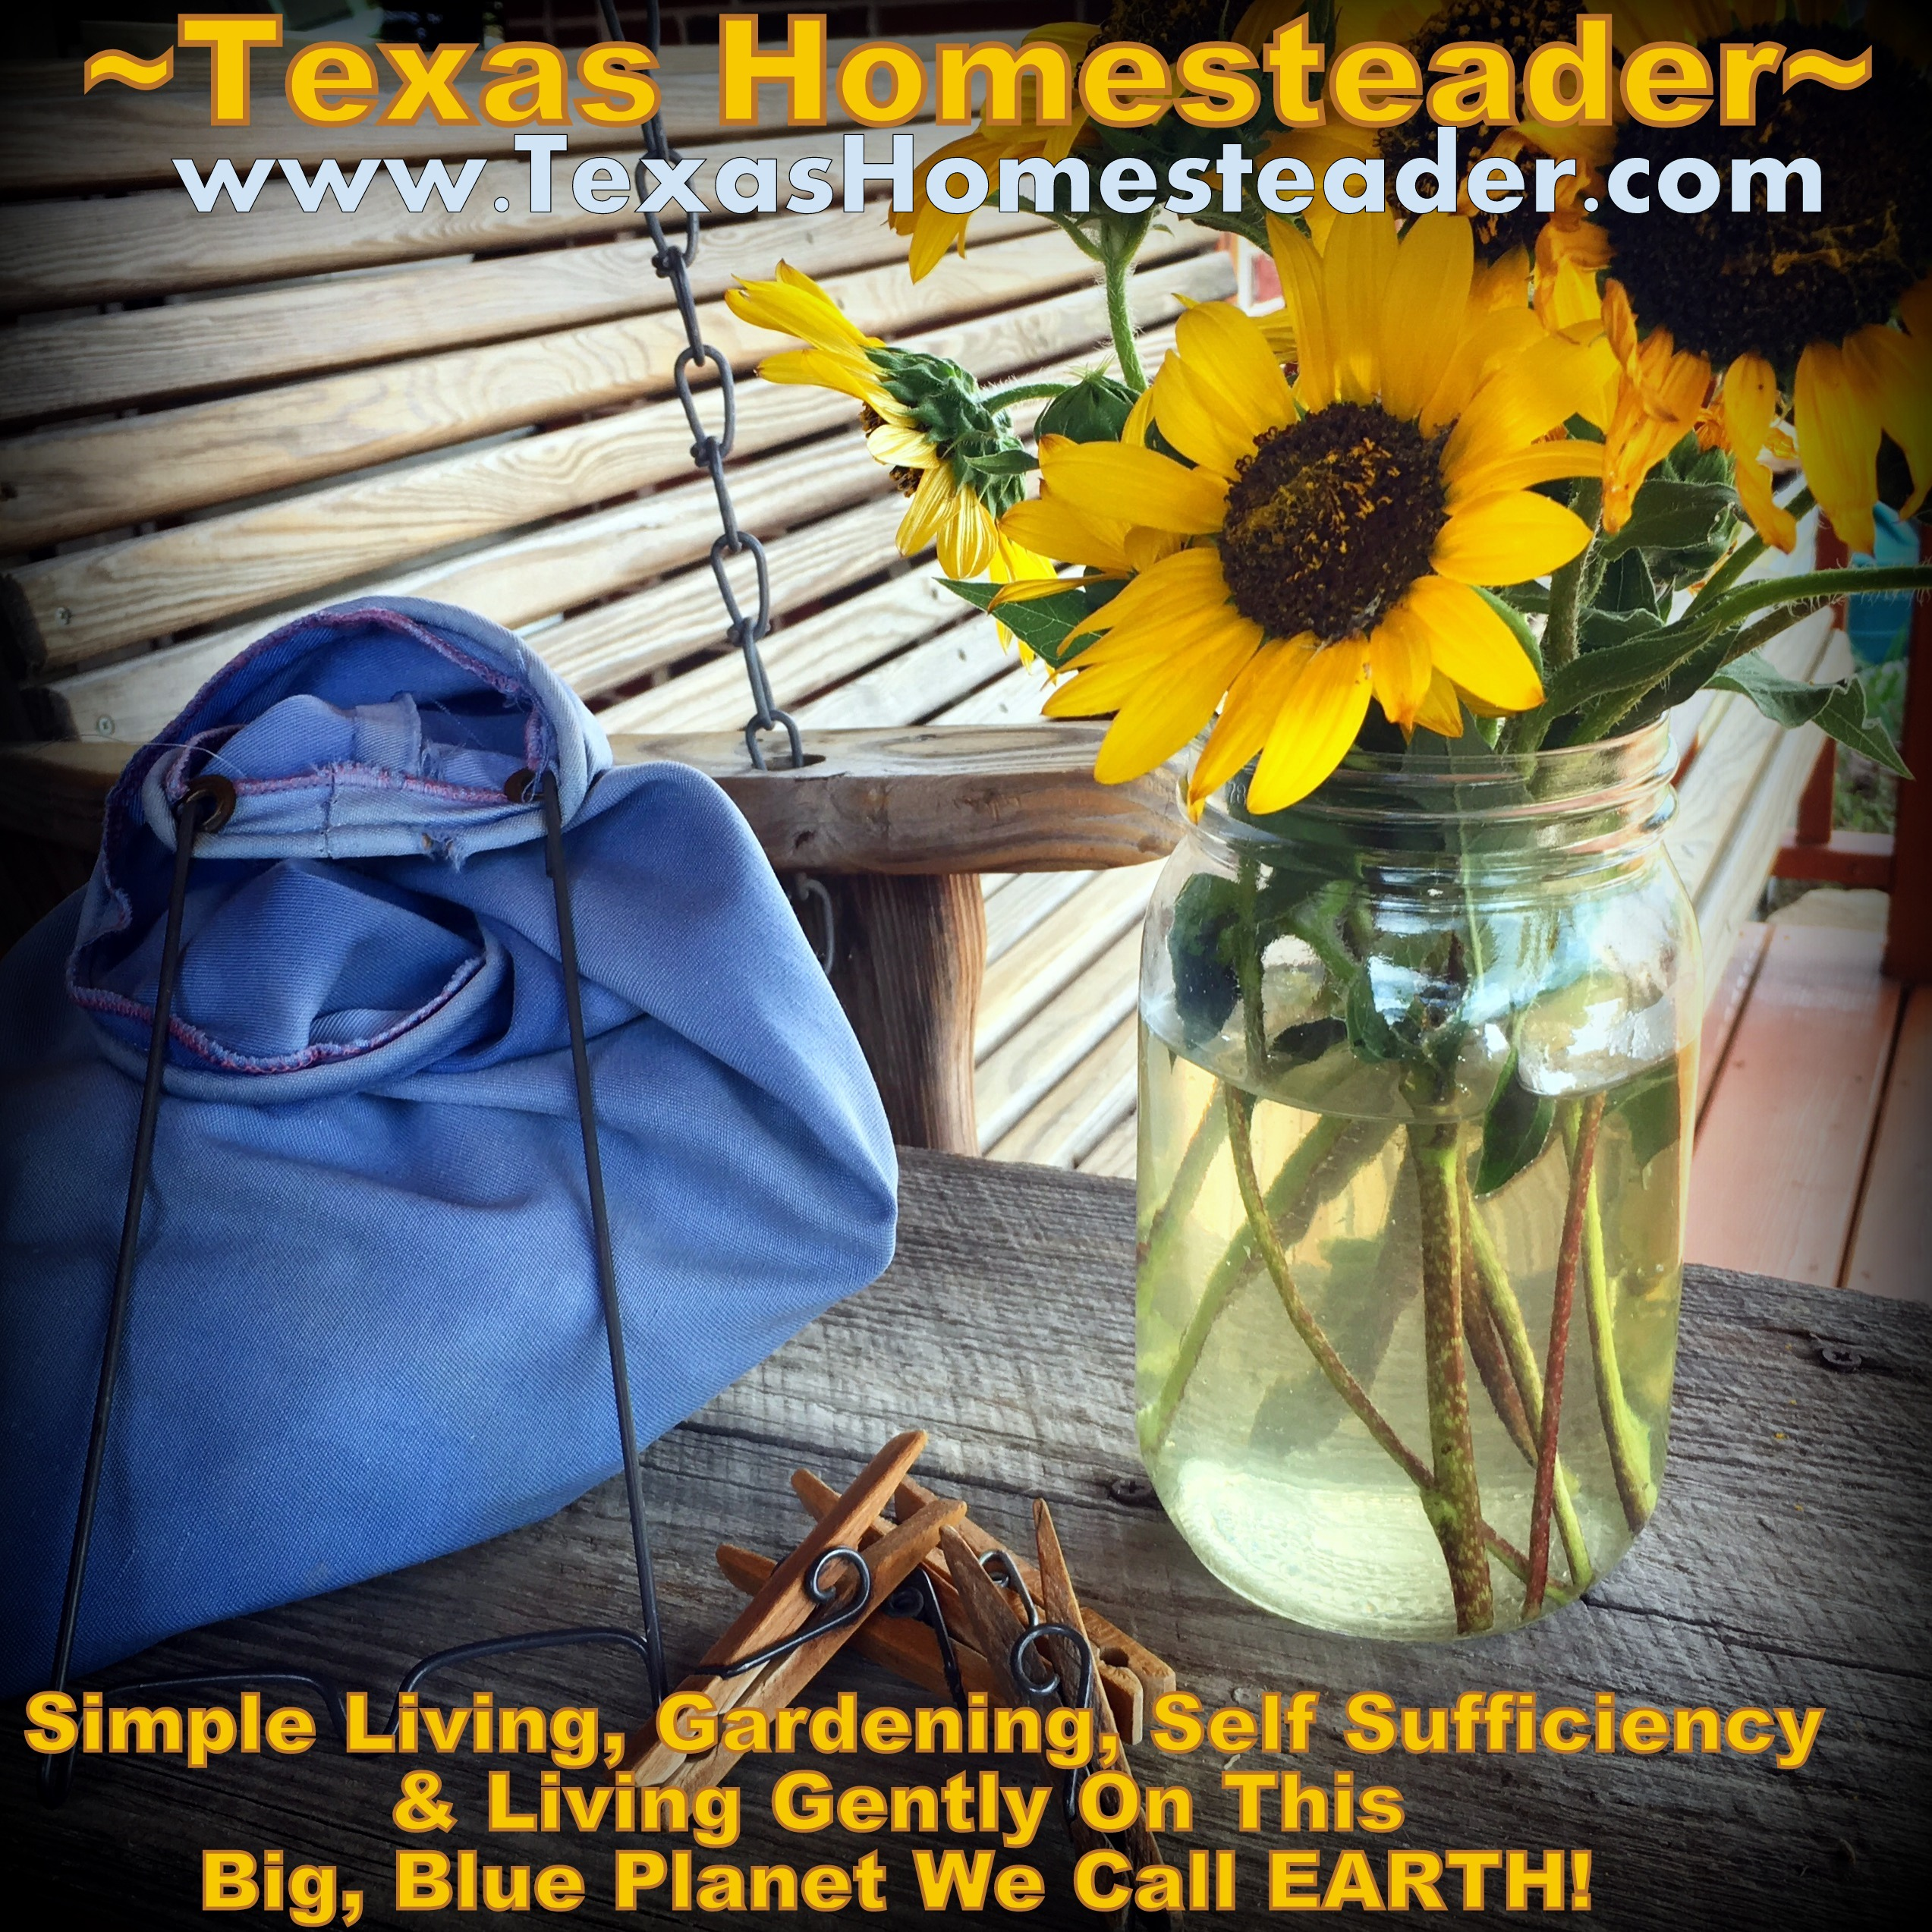 Loving my life on the homestead! #TexasHomesteader.com